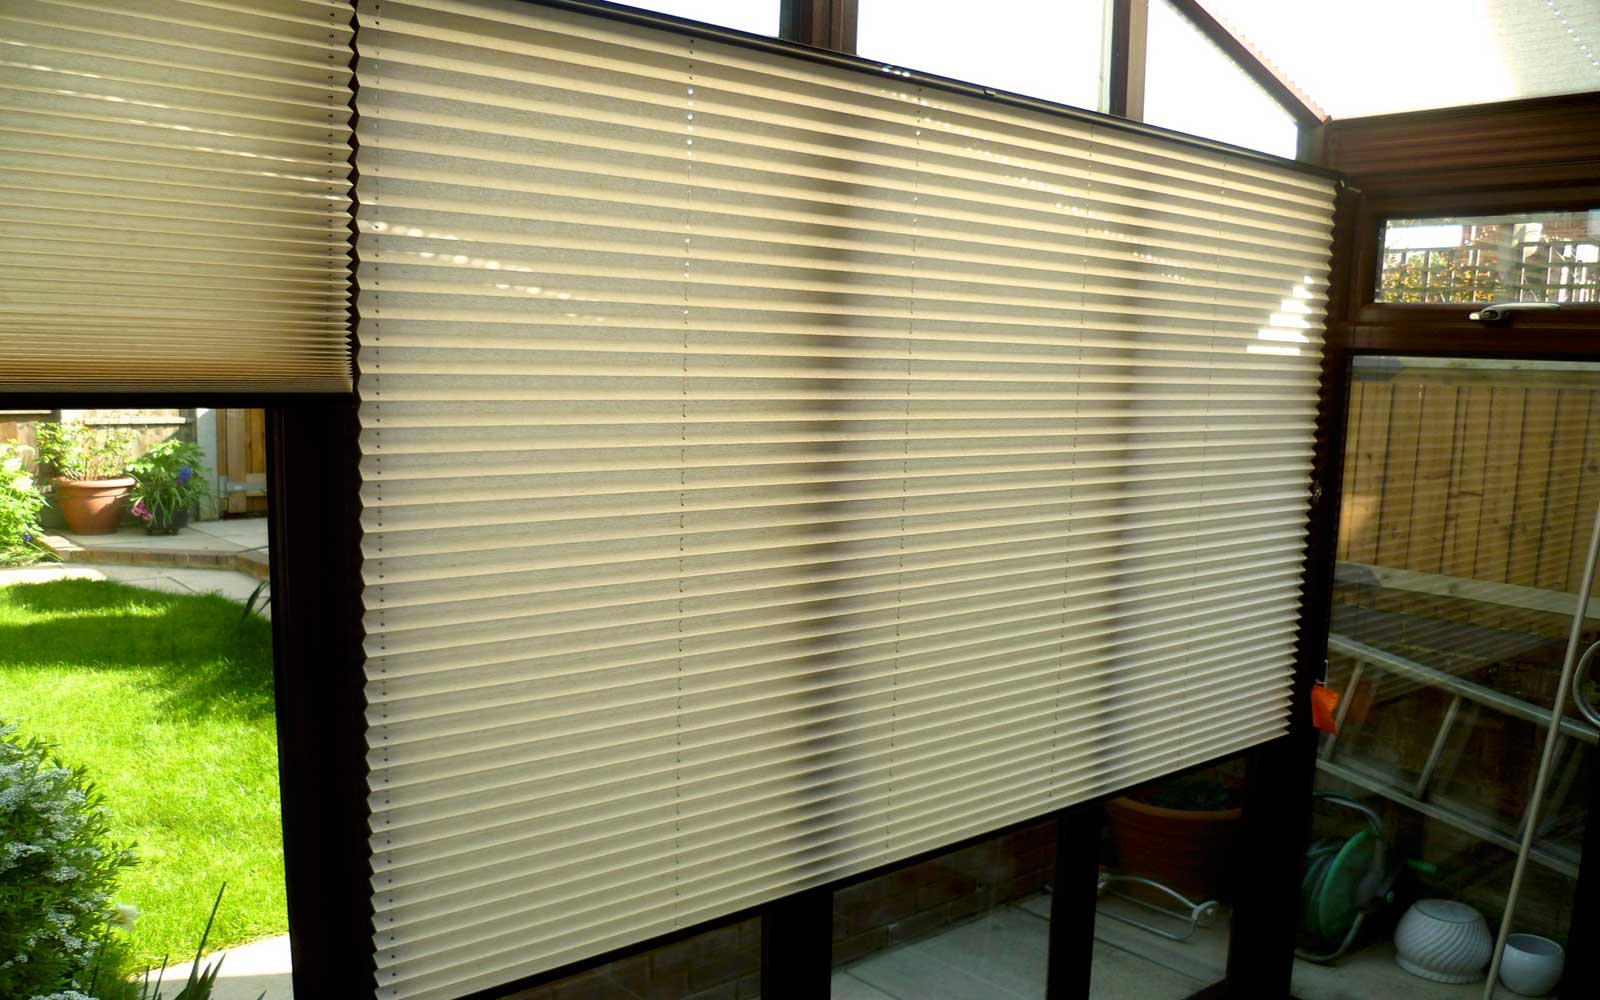 Pleated_Blinds_in_Conservatory